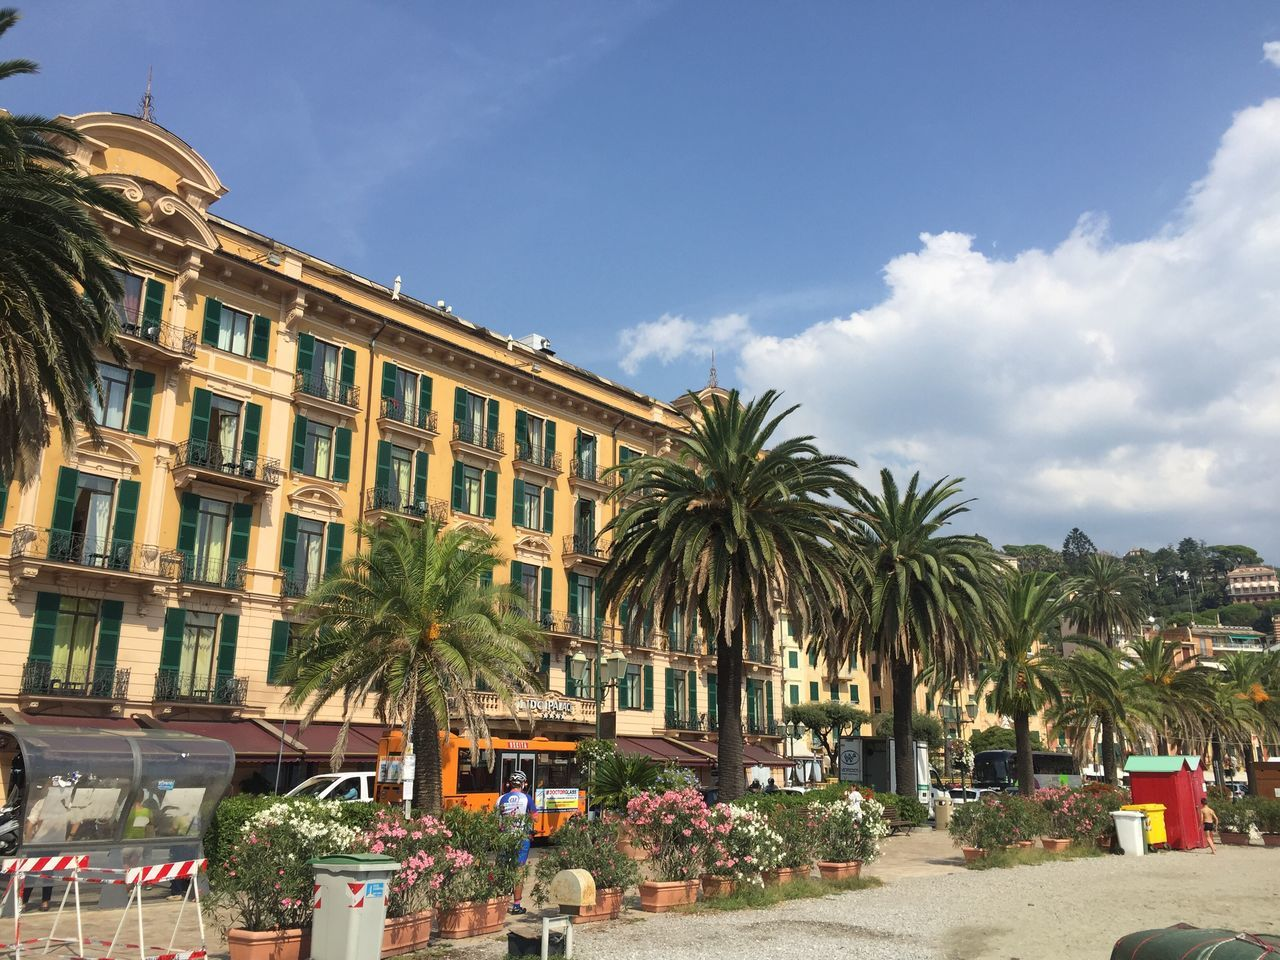 Cannes, France Cannes2016 Built Structure Palm Trees Warm Weather Street Is Empty